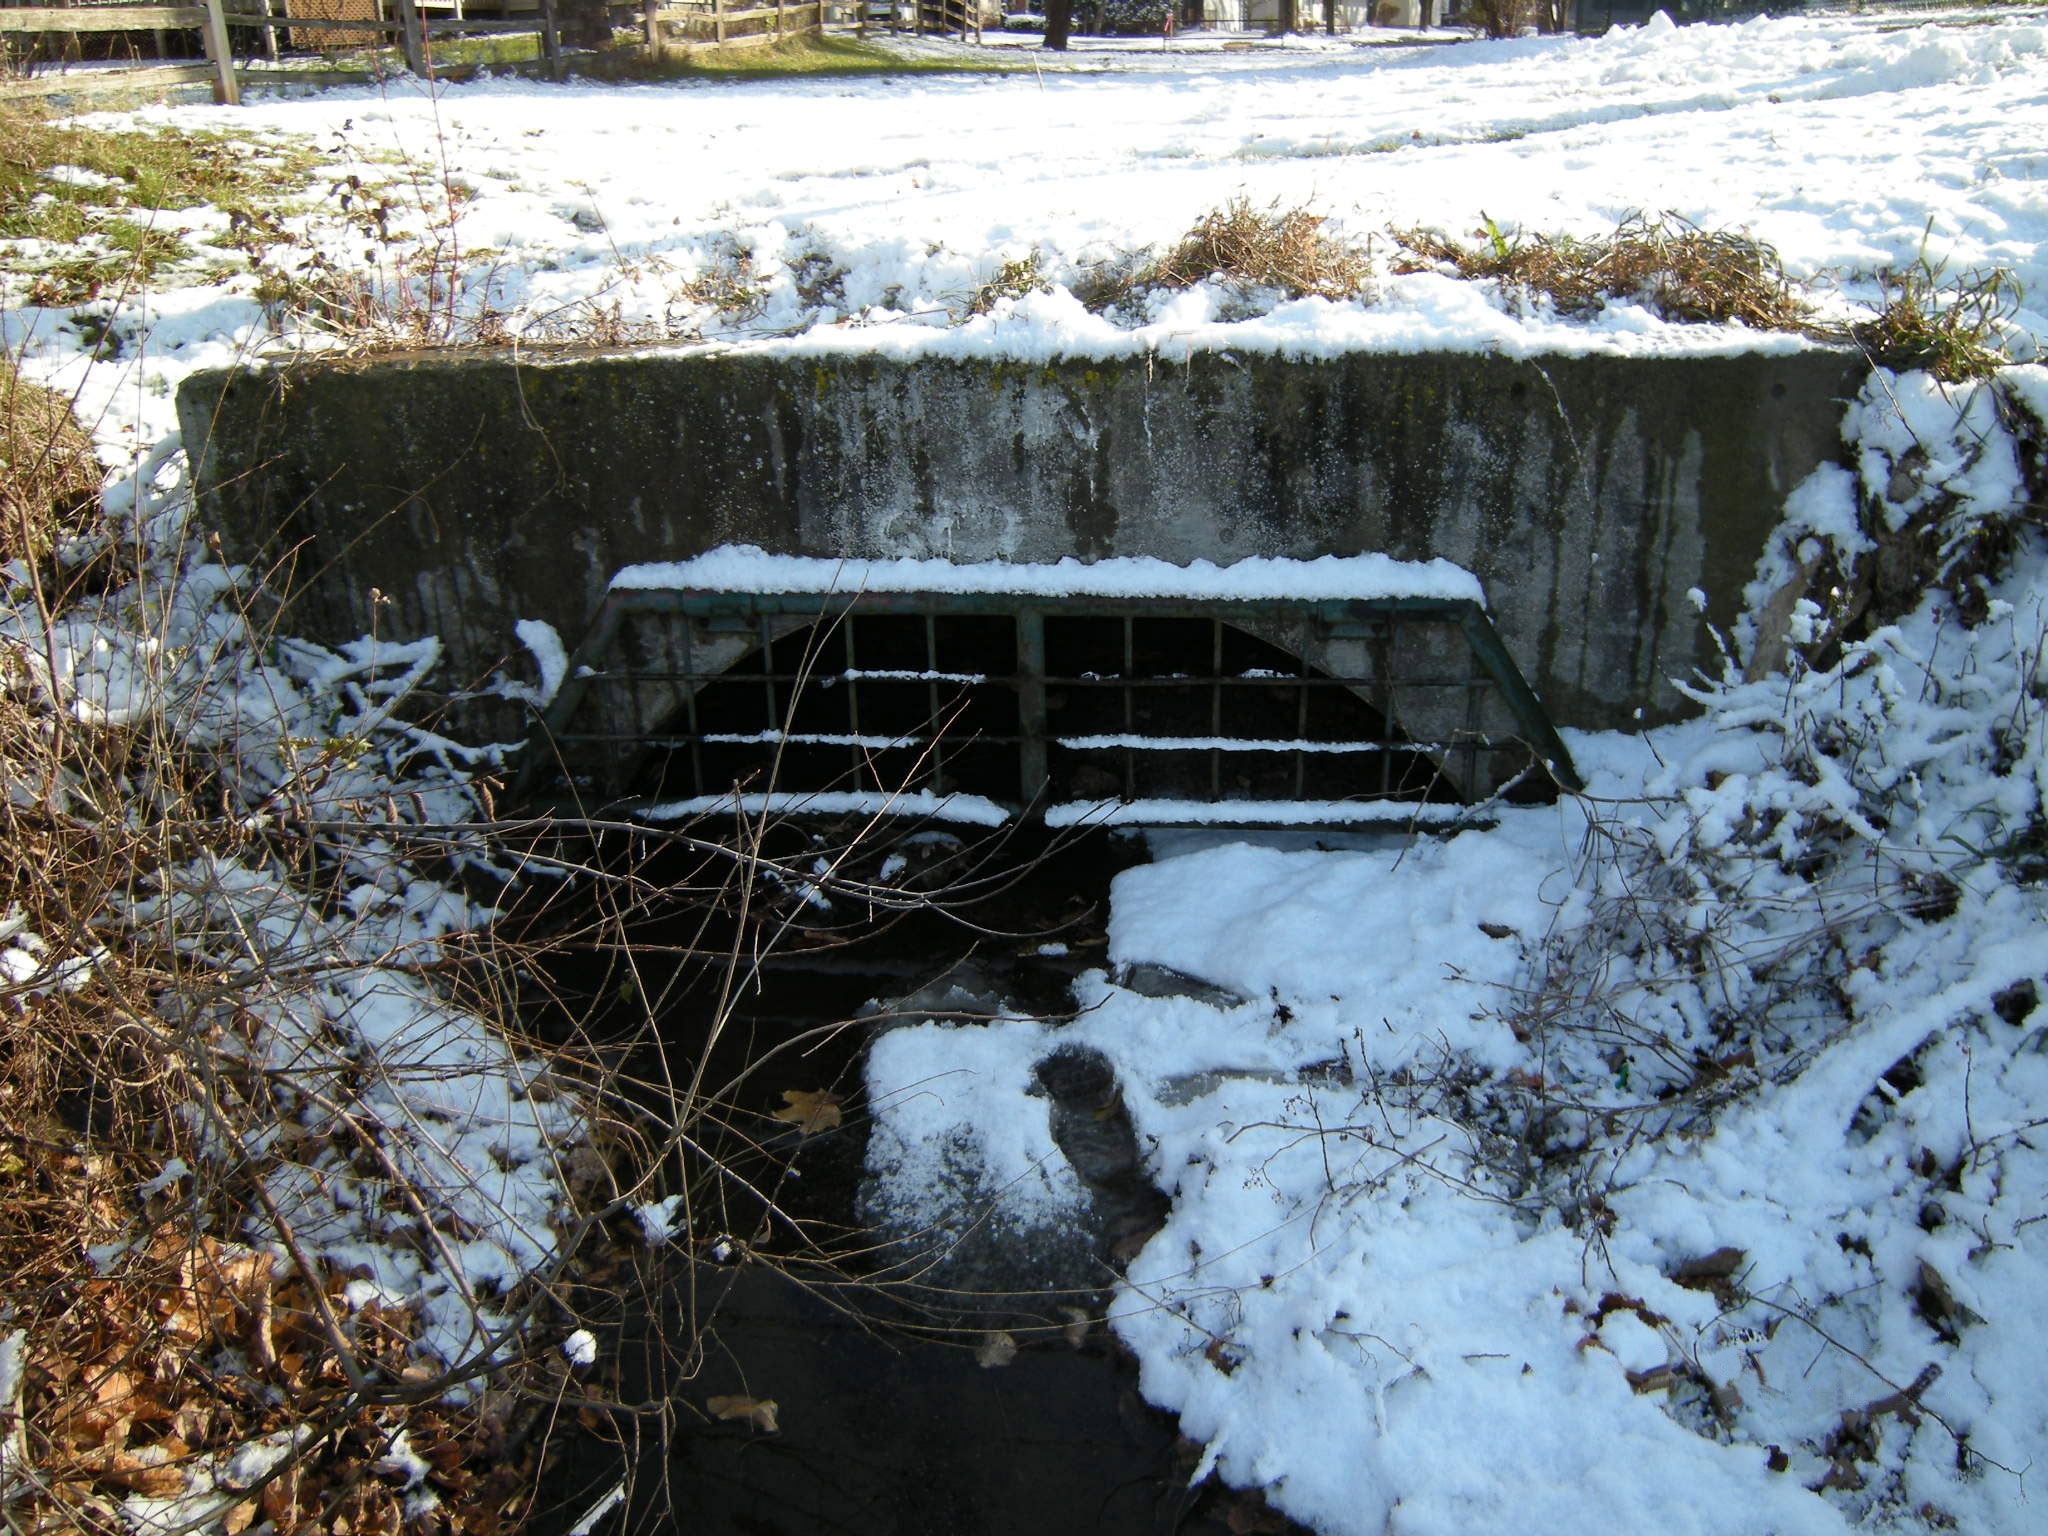 Sewer in the winter